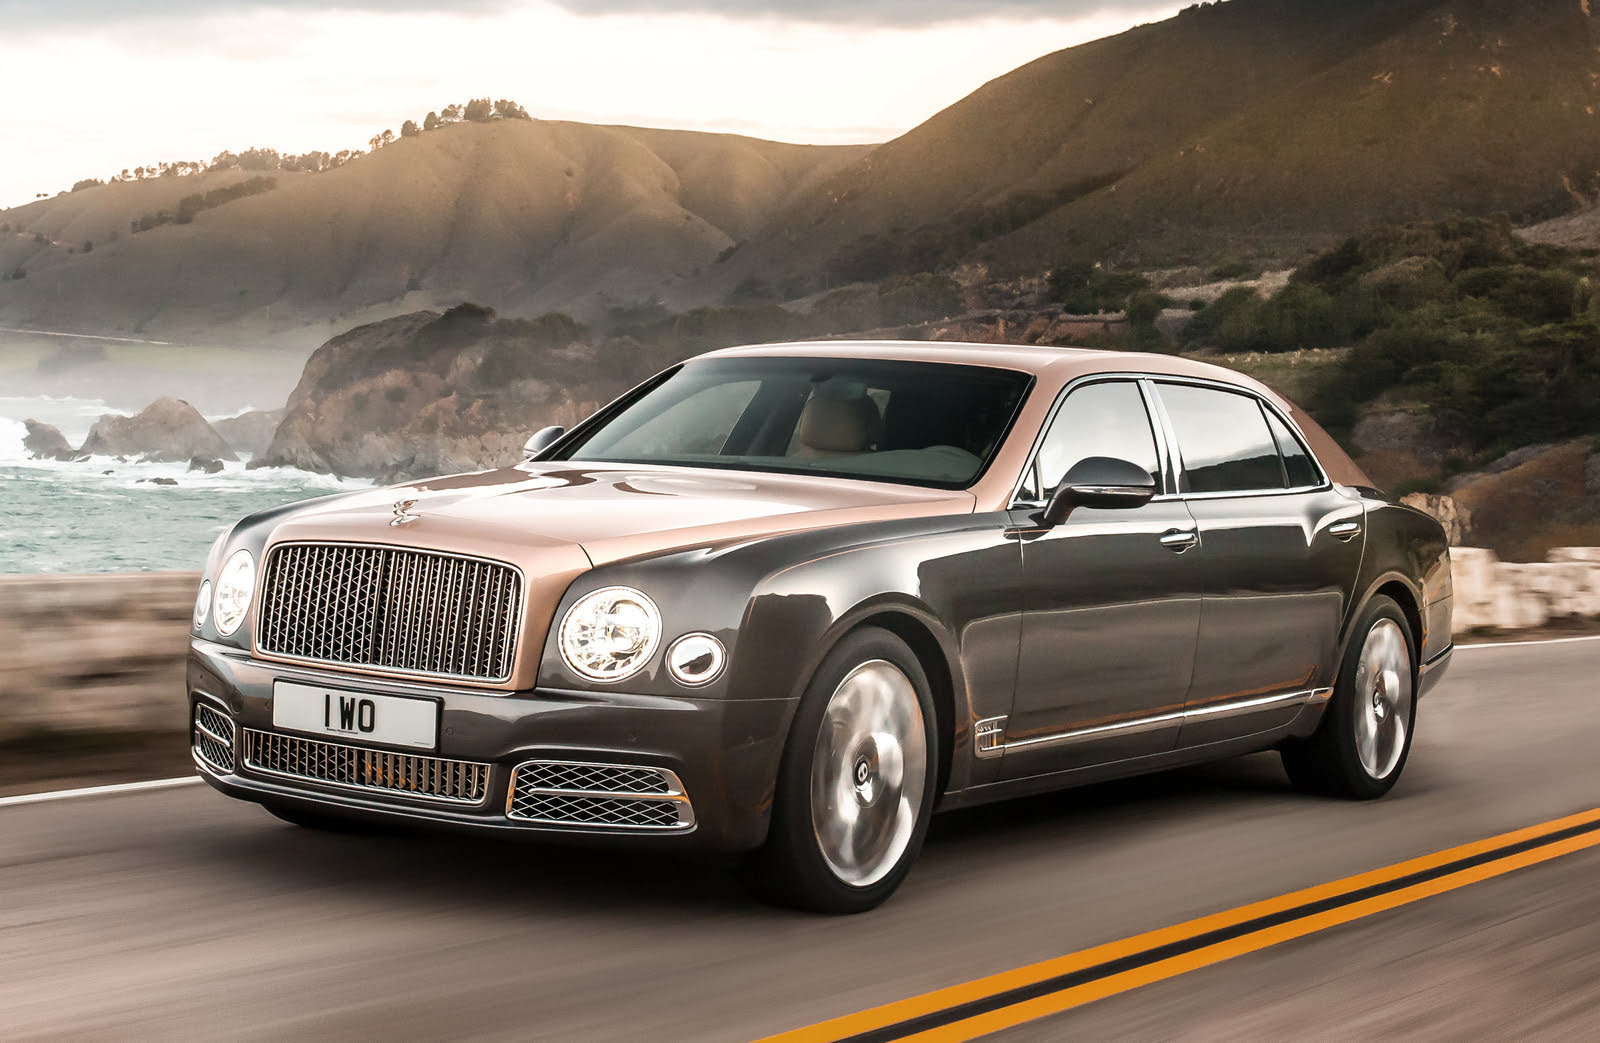 Used 2019 Bentley Mulsanne for Sale (with Photos) - CarGurus